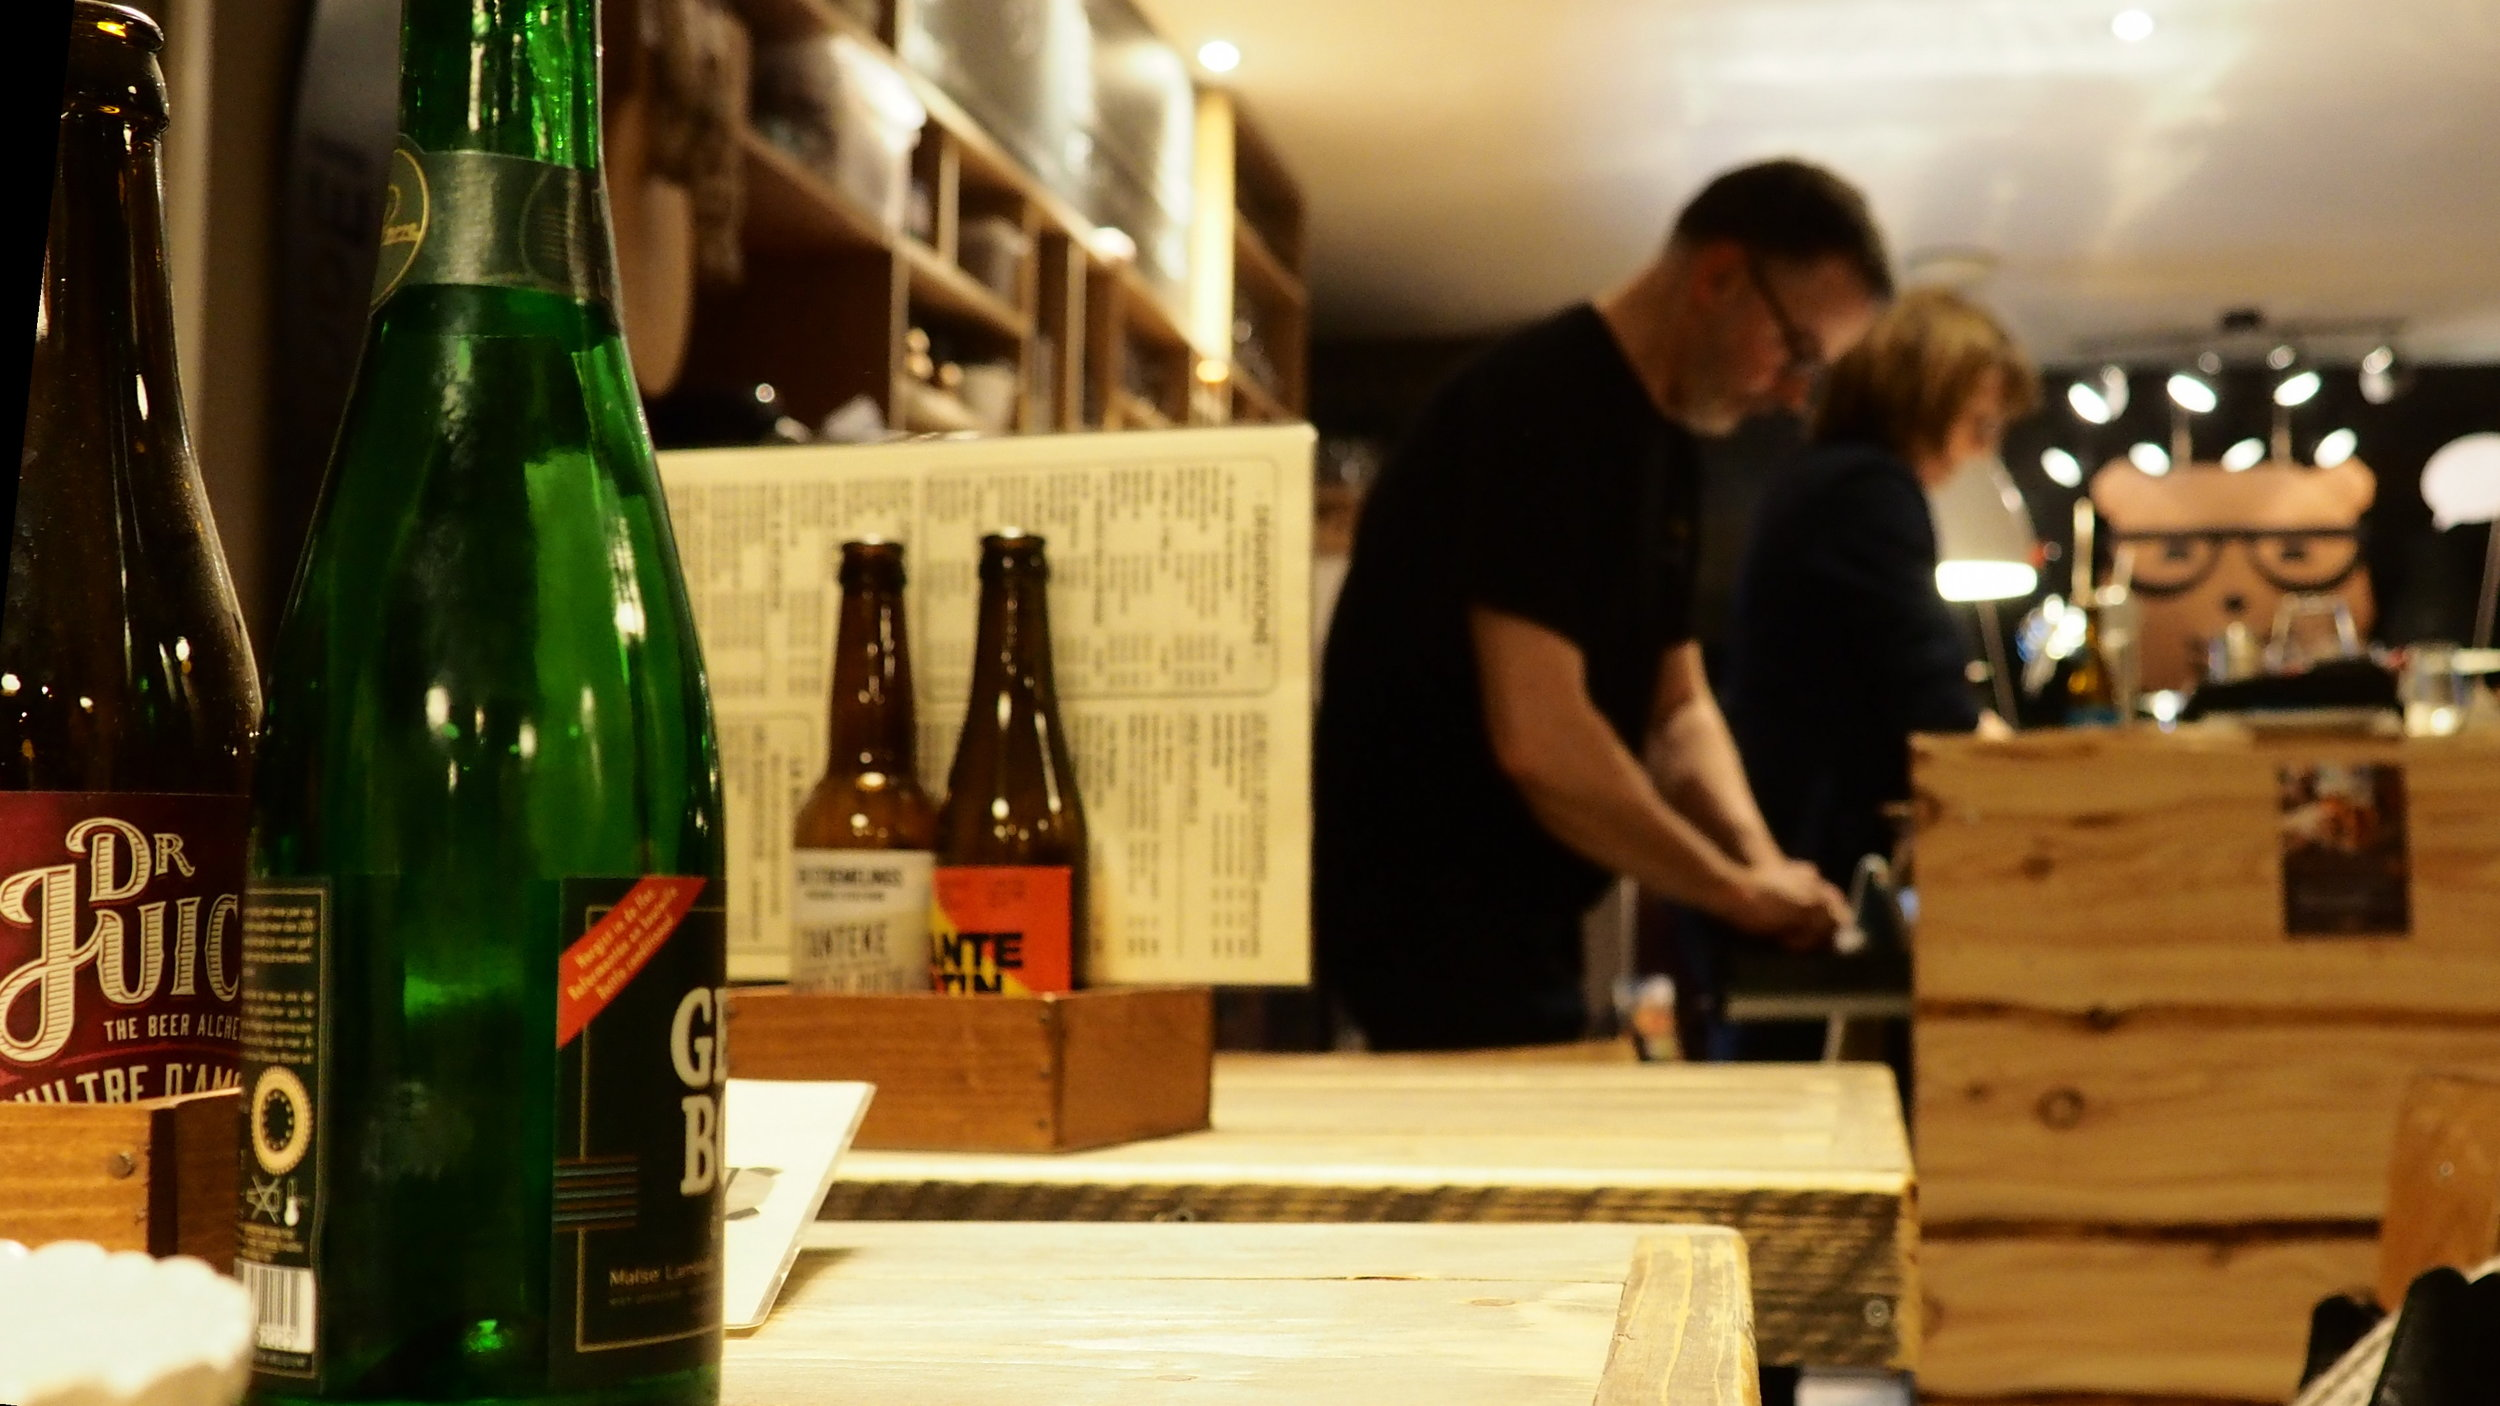 beer-therapy-biere-artisanale-P2280118